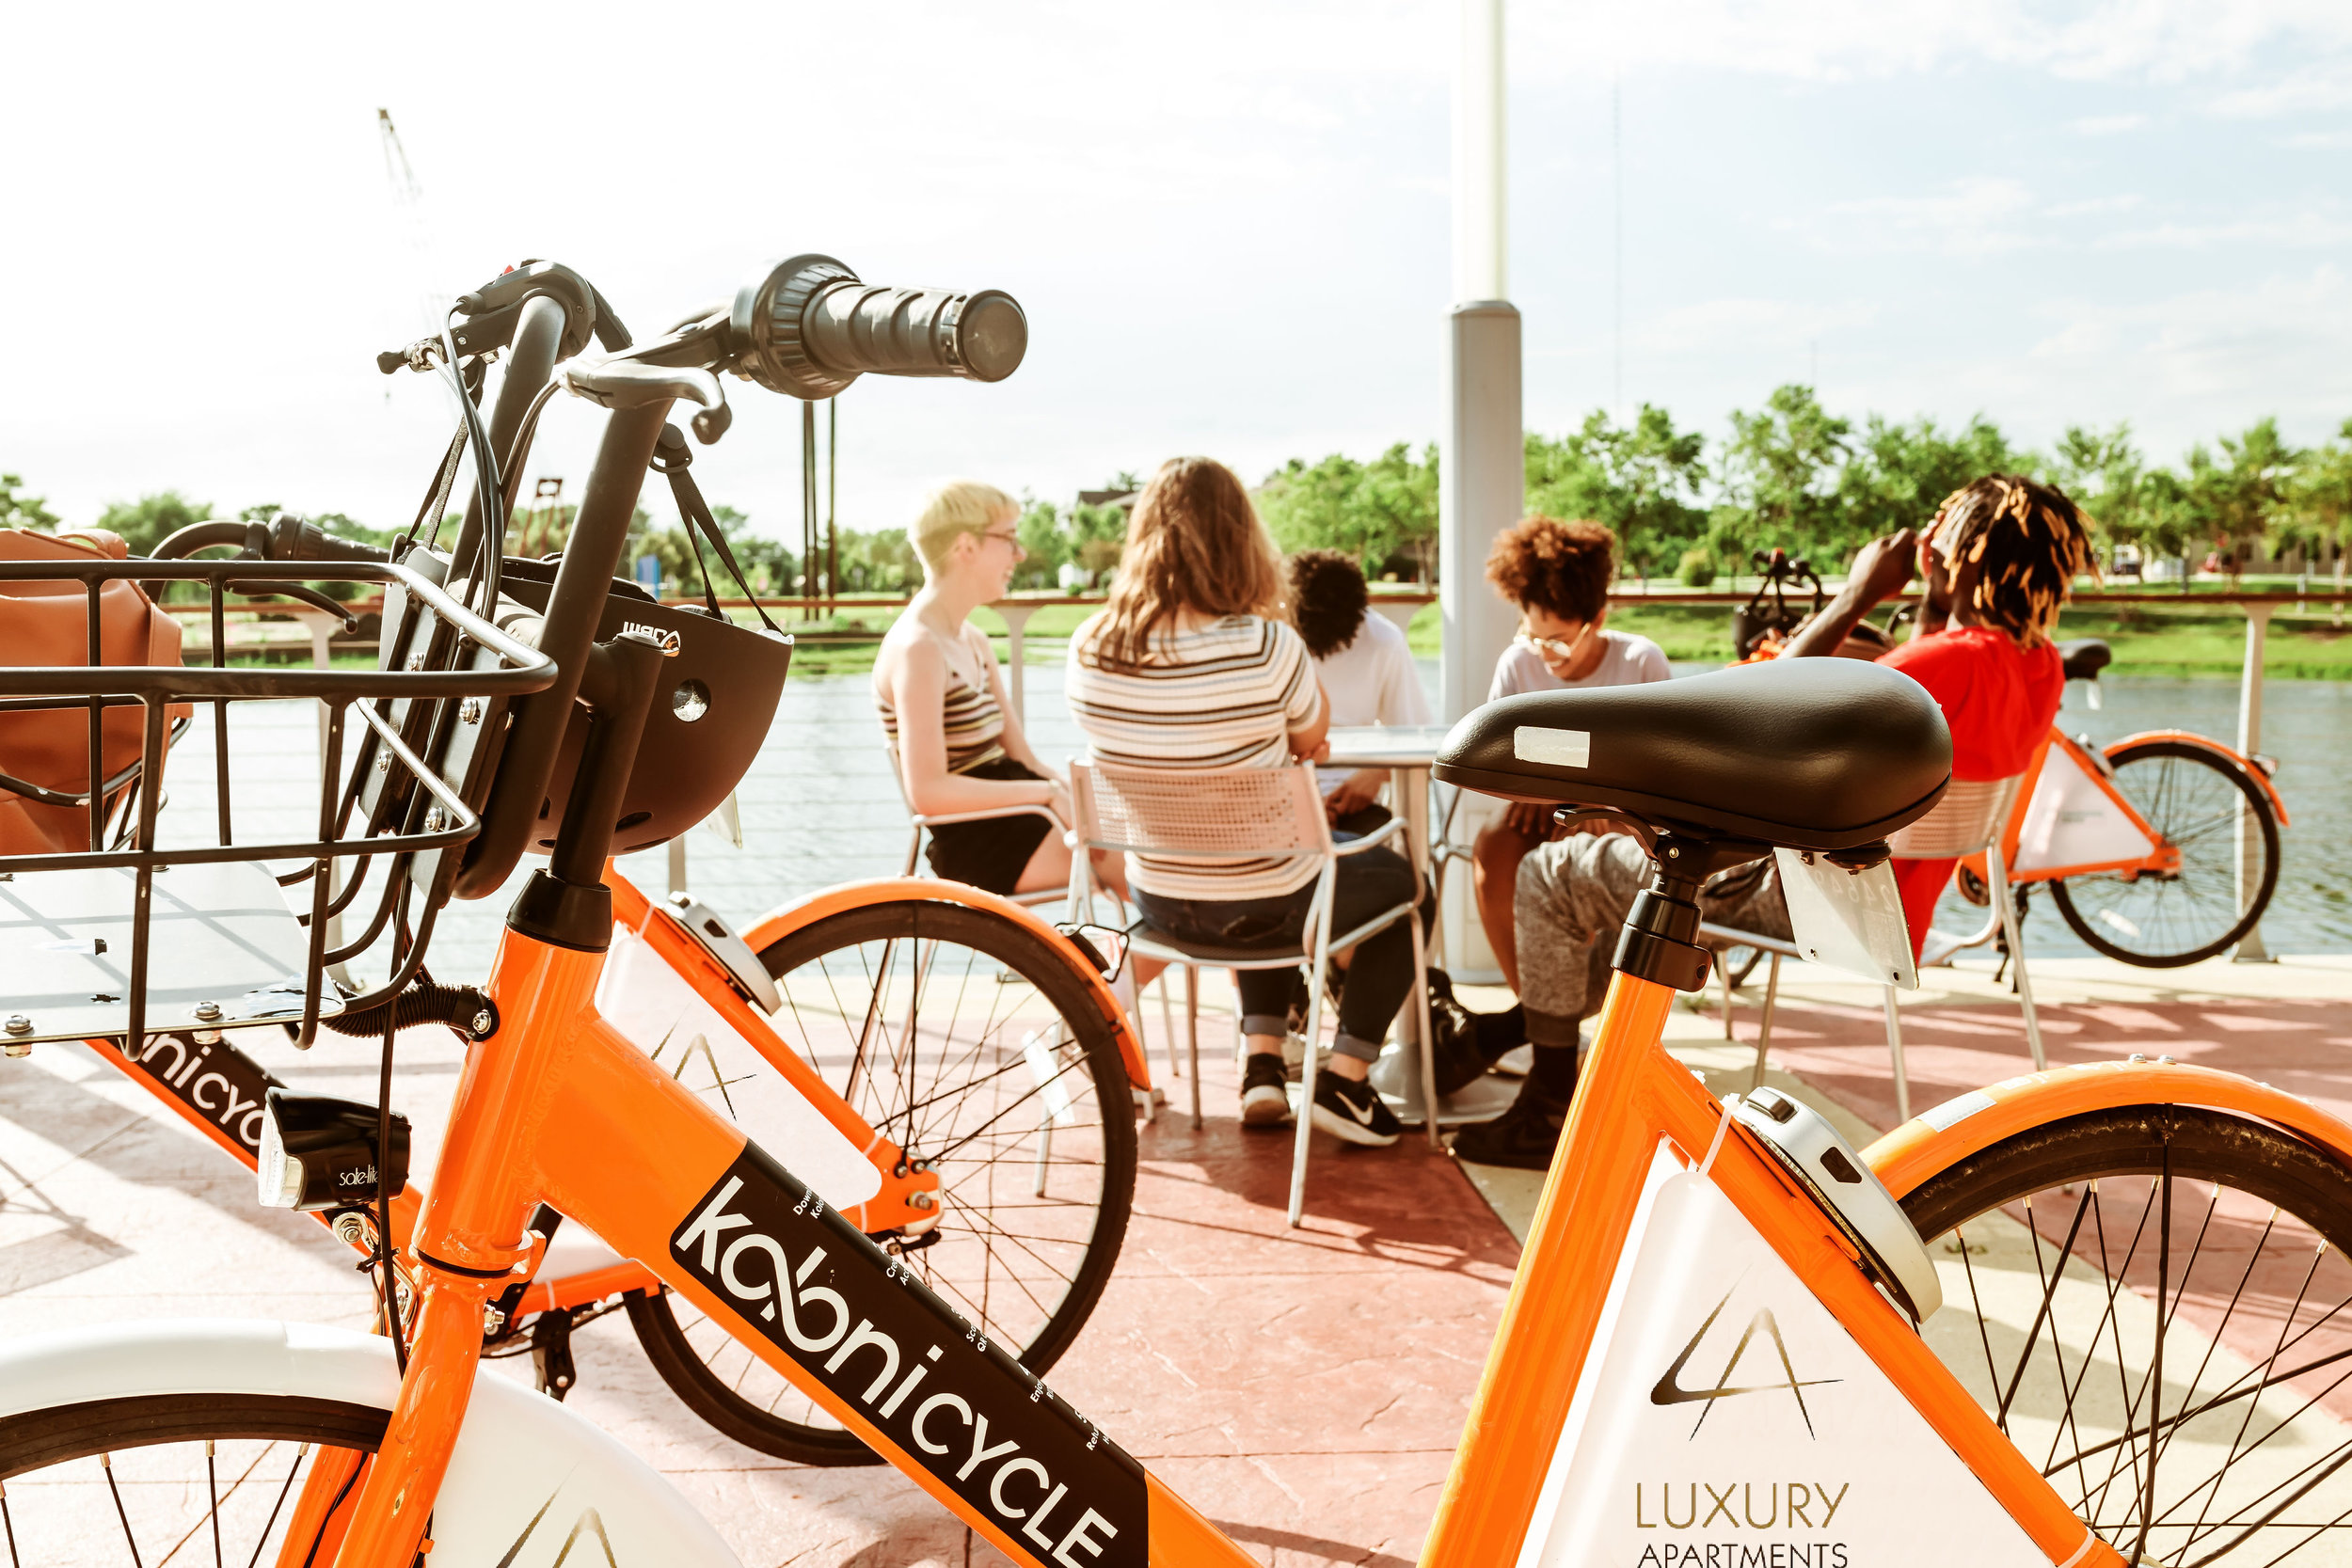 A Billboard on Wheels - A branded bike fleet will travel all around your community. Market your property, fill vacancies, and create brand recognition.Alternatively, you can sell the ad space, and generate additional revenue for your facility.